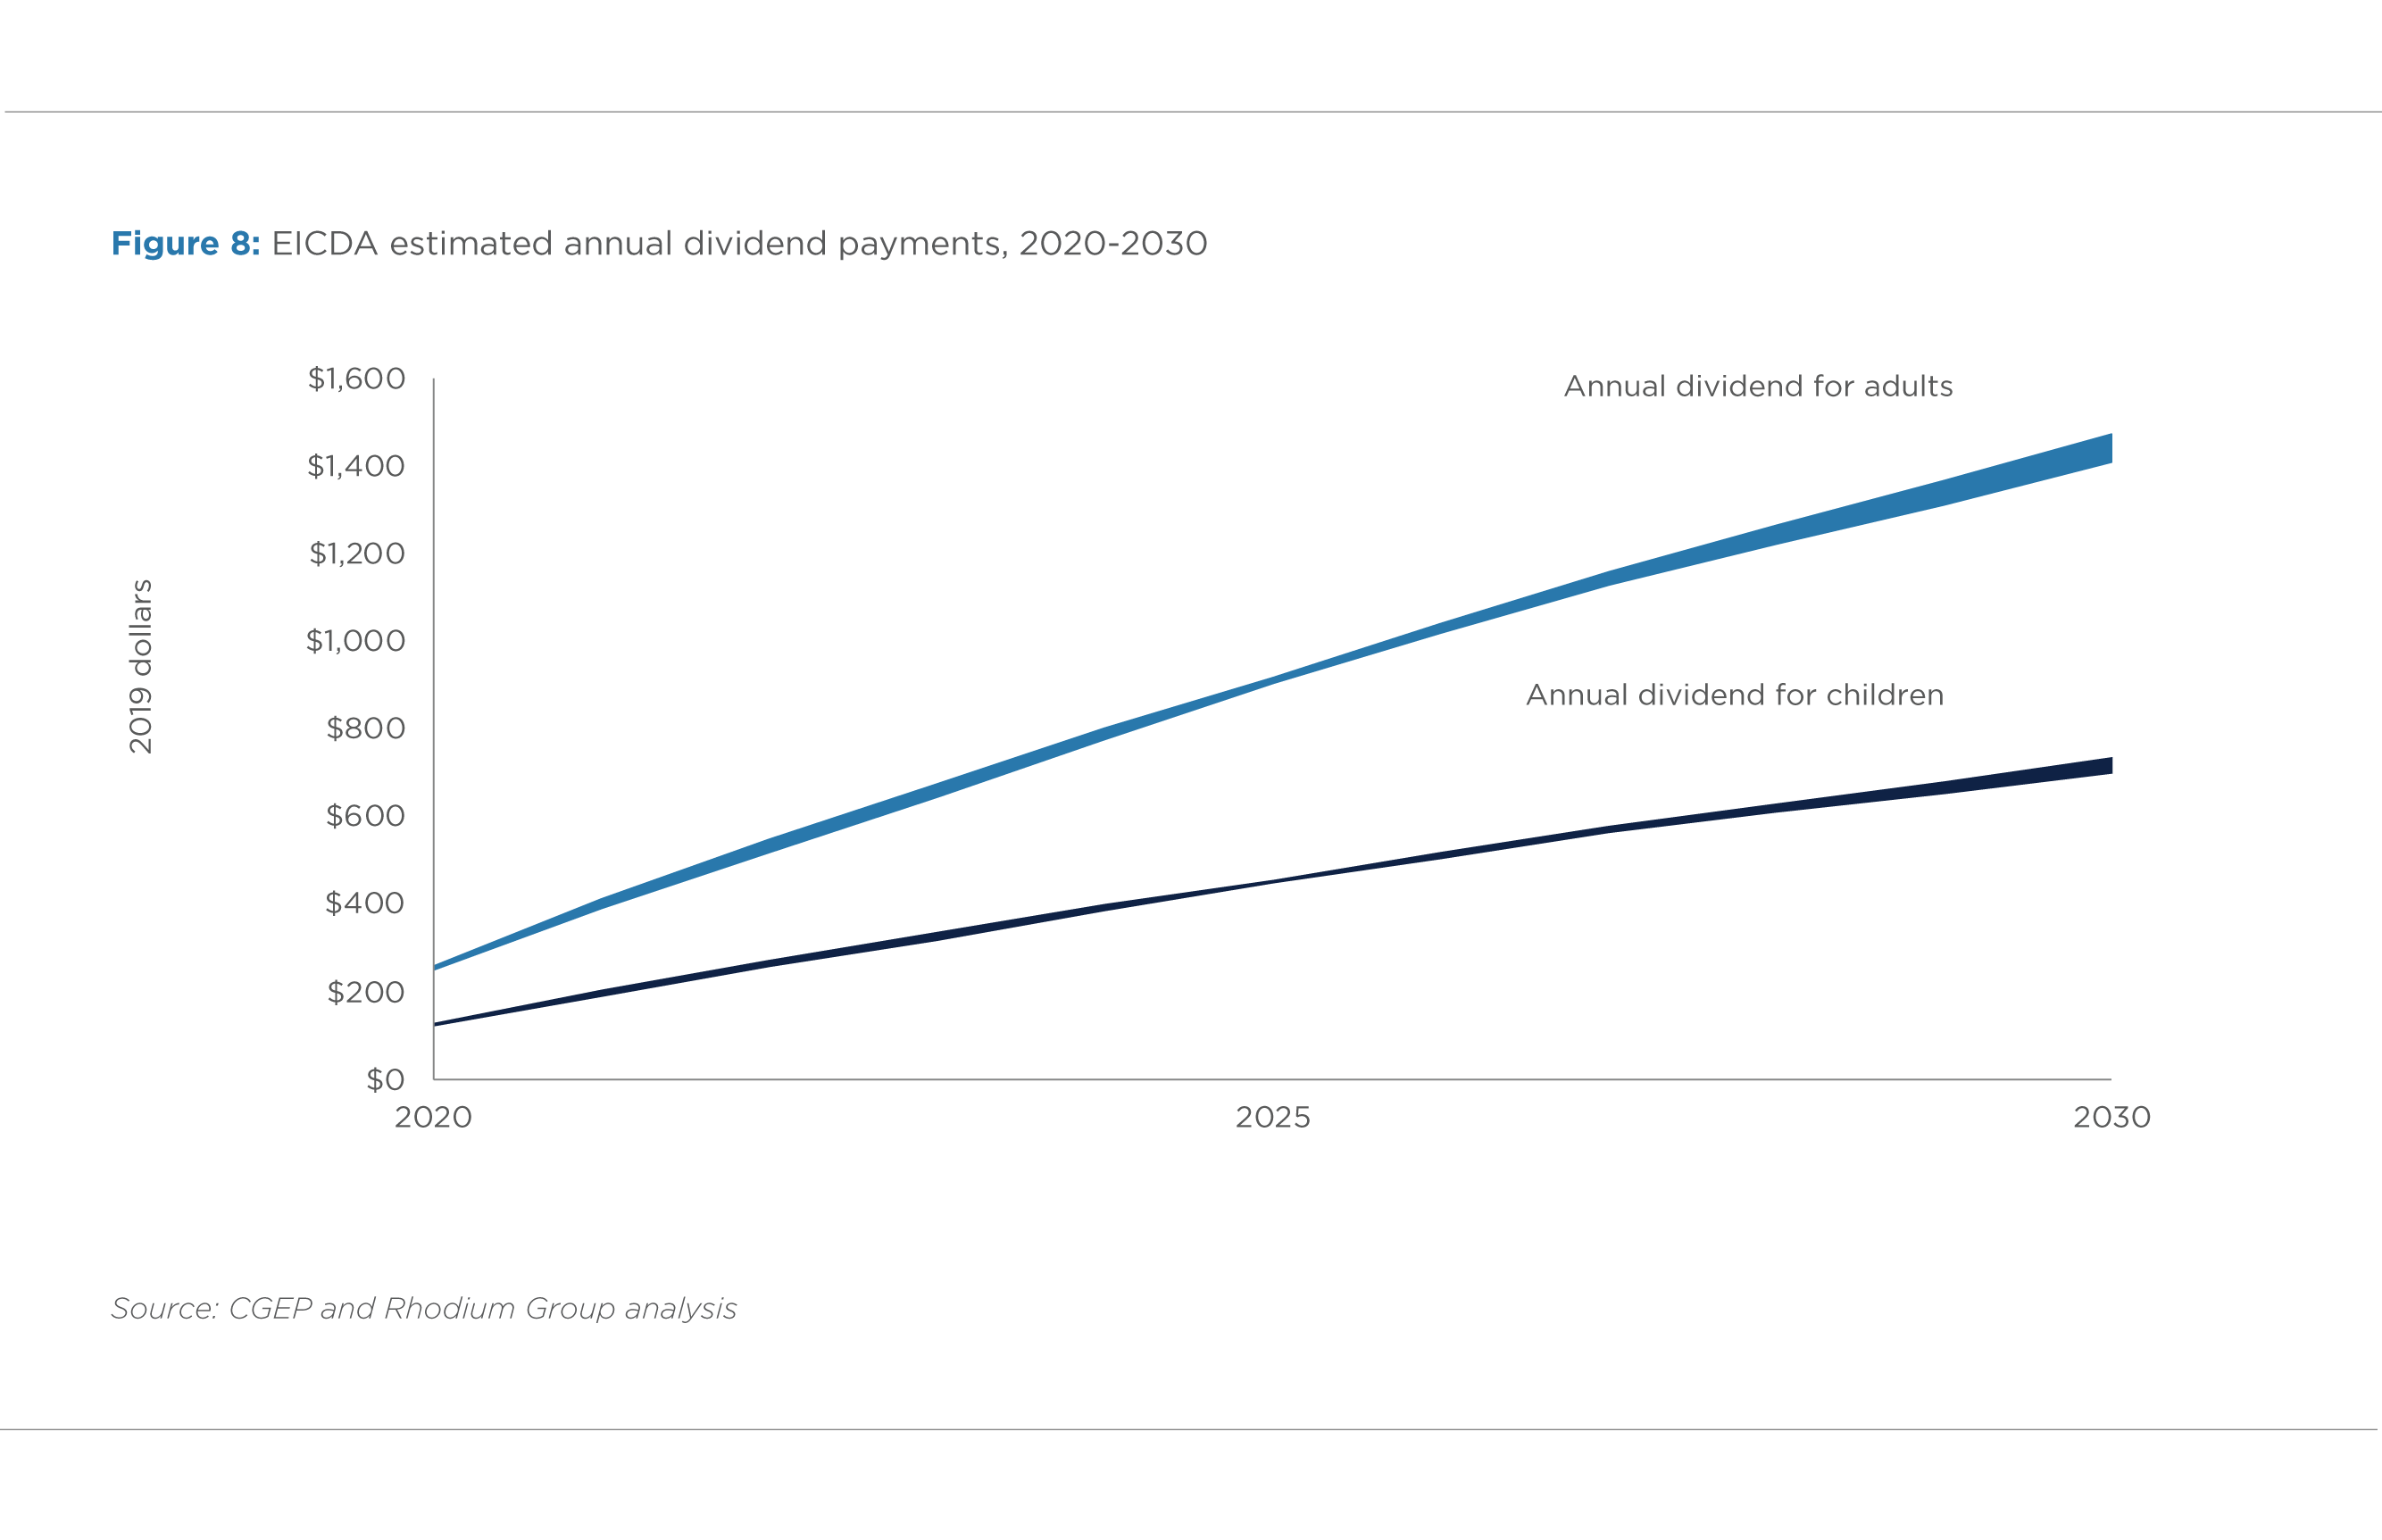 FIGURE 8. EICDA ESTIMATED ANNUAL DIVIDEND PAYMENTS, 2020 AND 2030